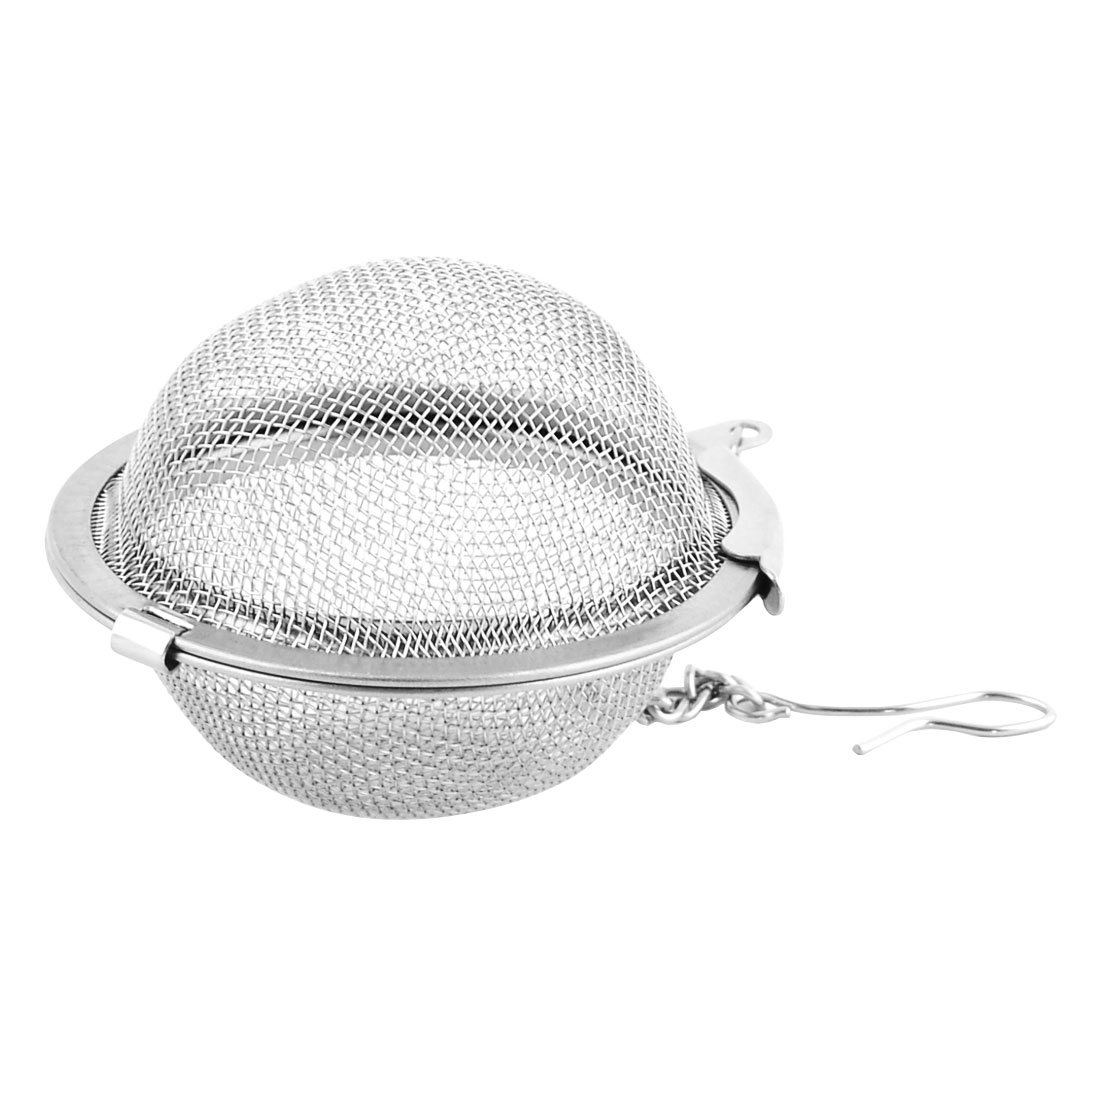 Unique BargainsHousehold Mesh Design Tea Leaf Stainer Filter Ball Silver Tone 5.3cm Dia 2 Pcs